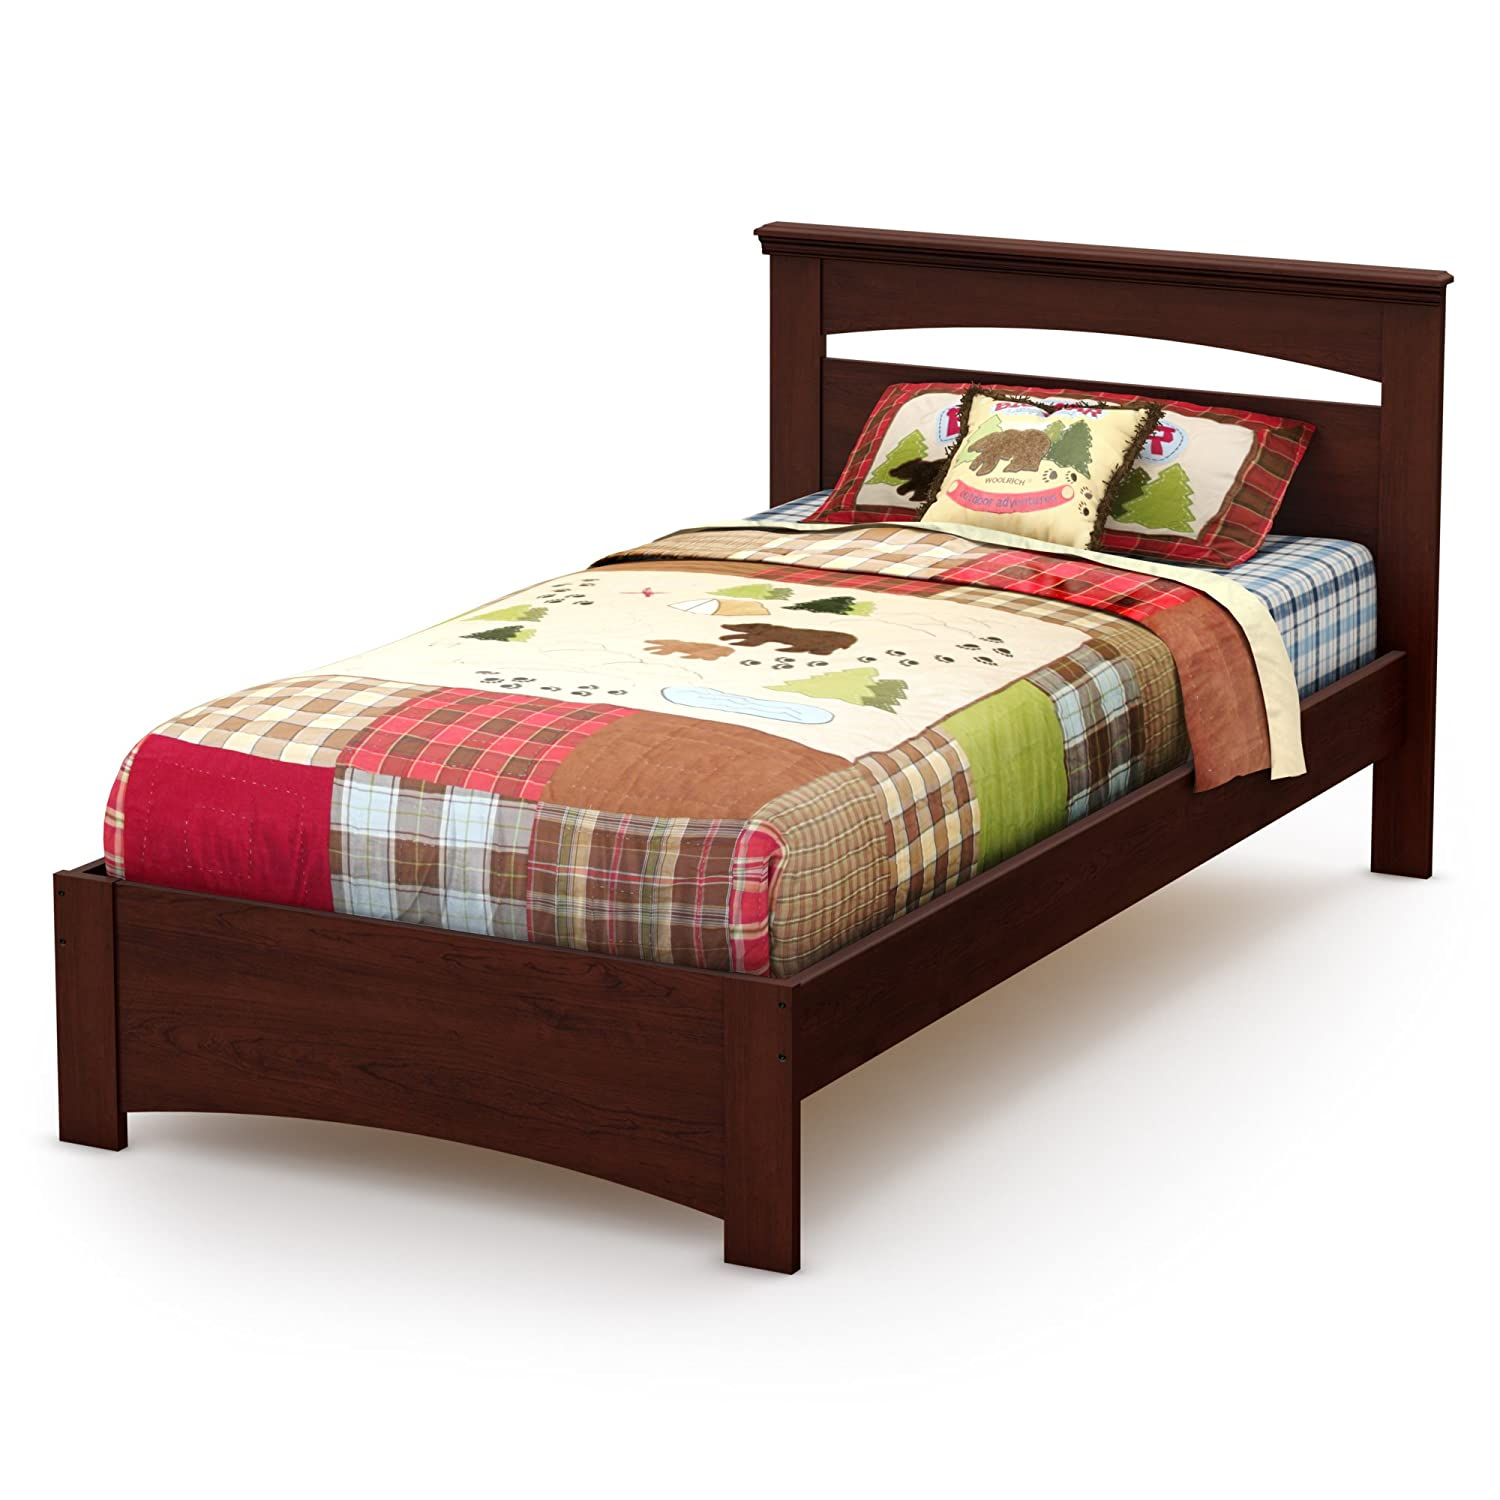 amazoncom south shore sweet morning twin bed royal cherry kitchen u0026 dining